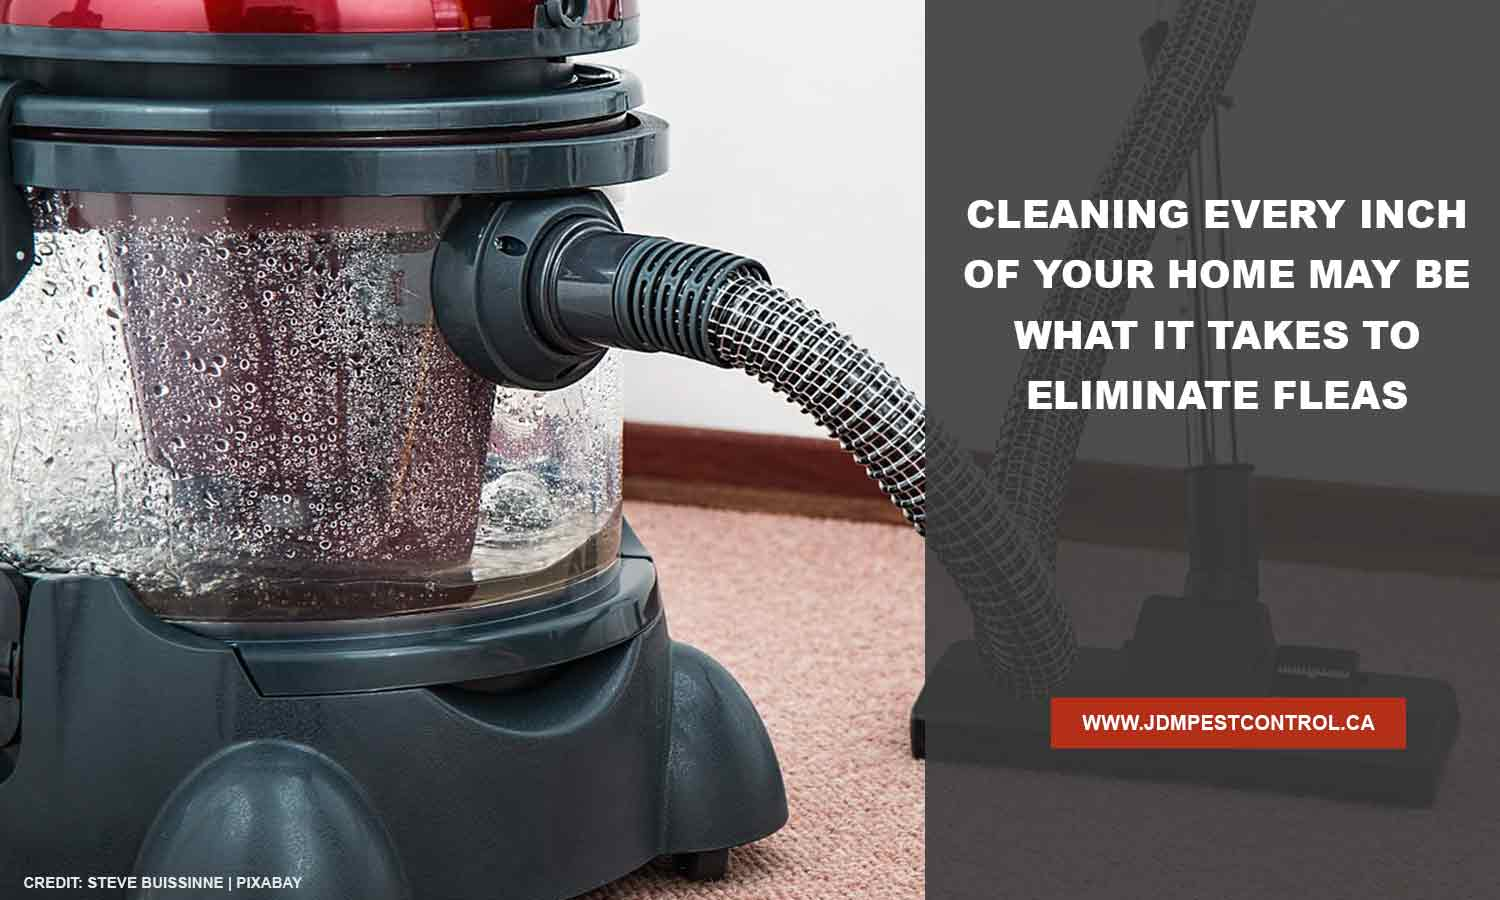 Cleaning every inch of your home may be what it takes to eliminate fleas